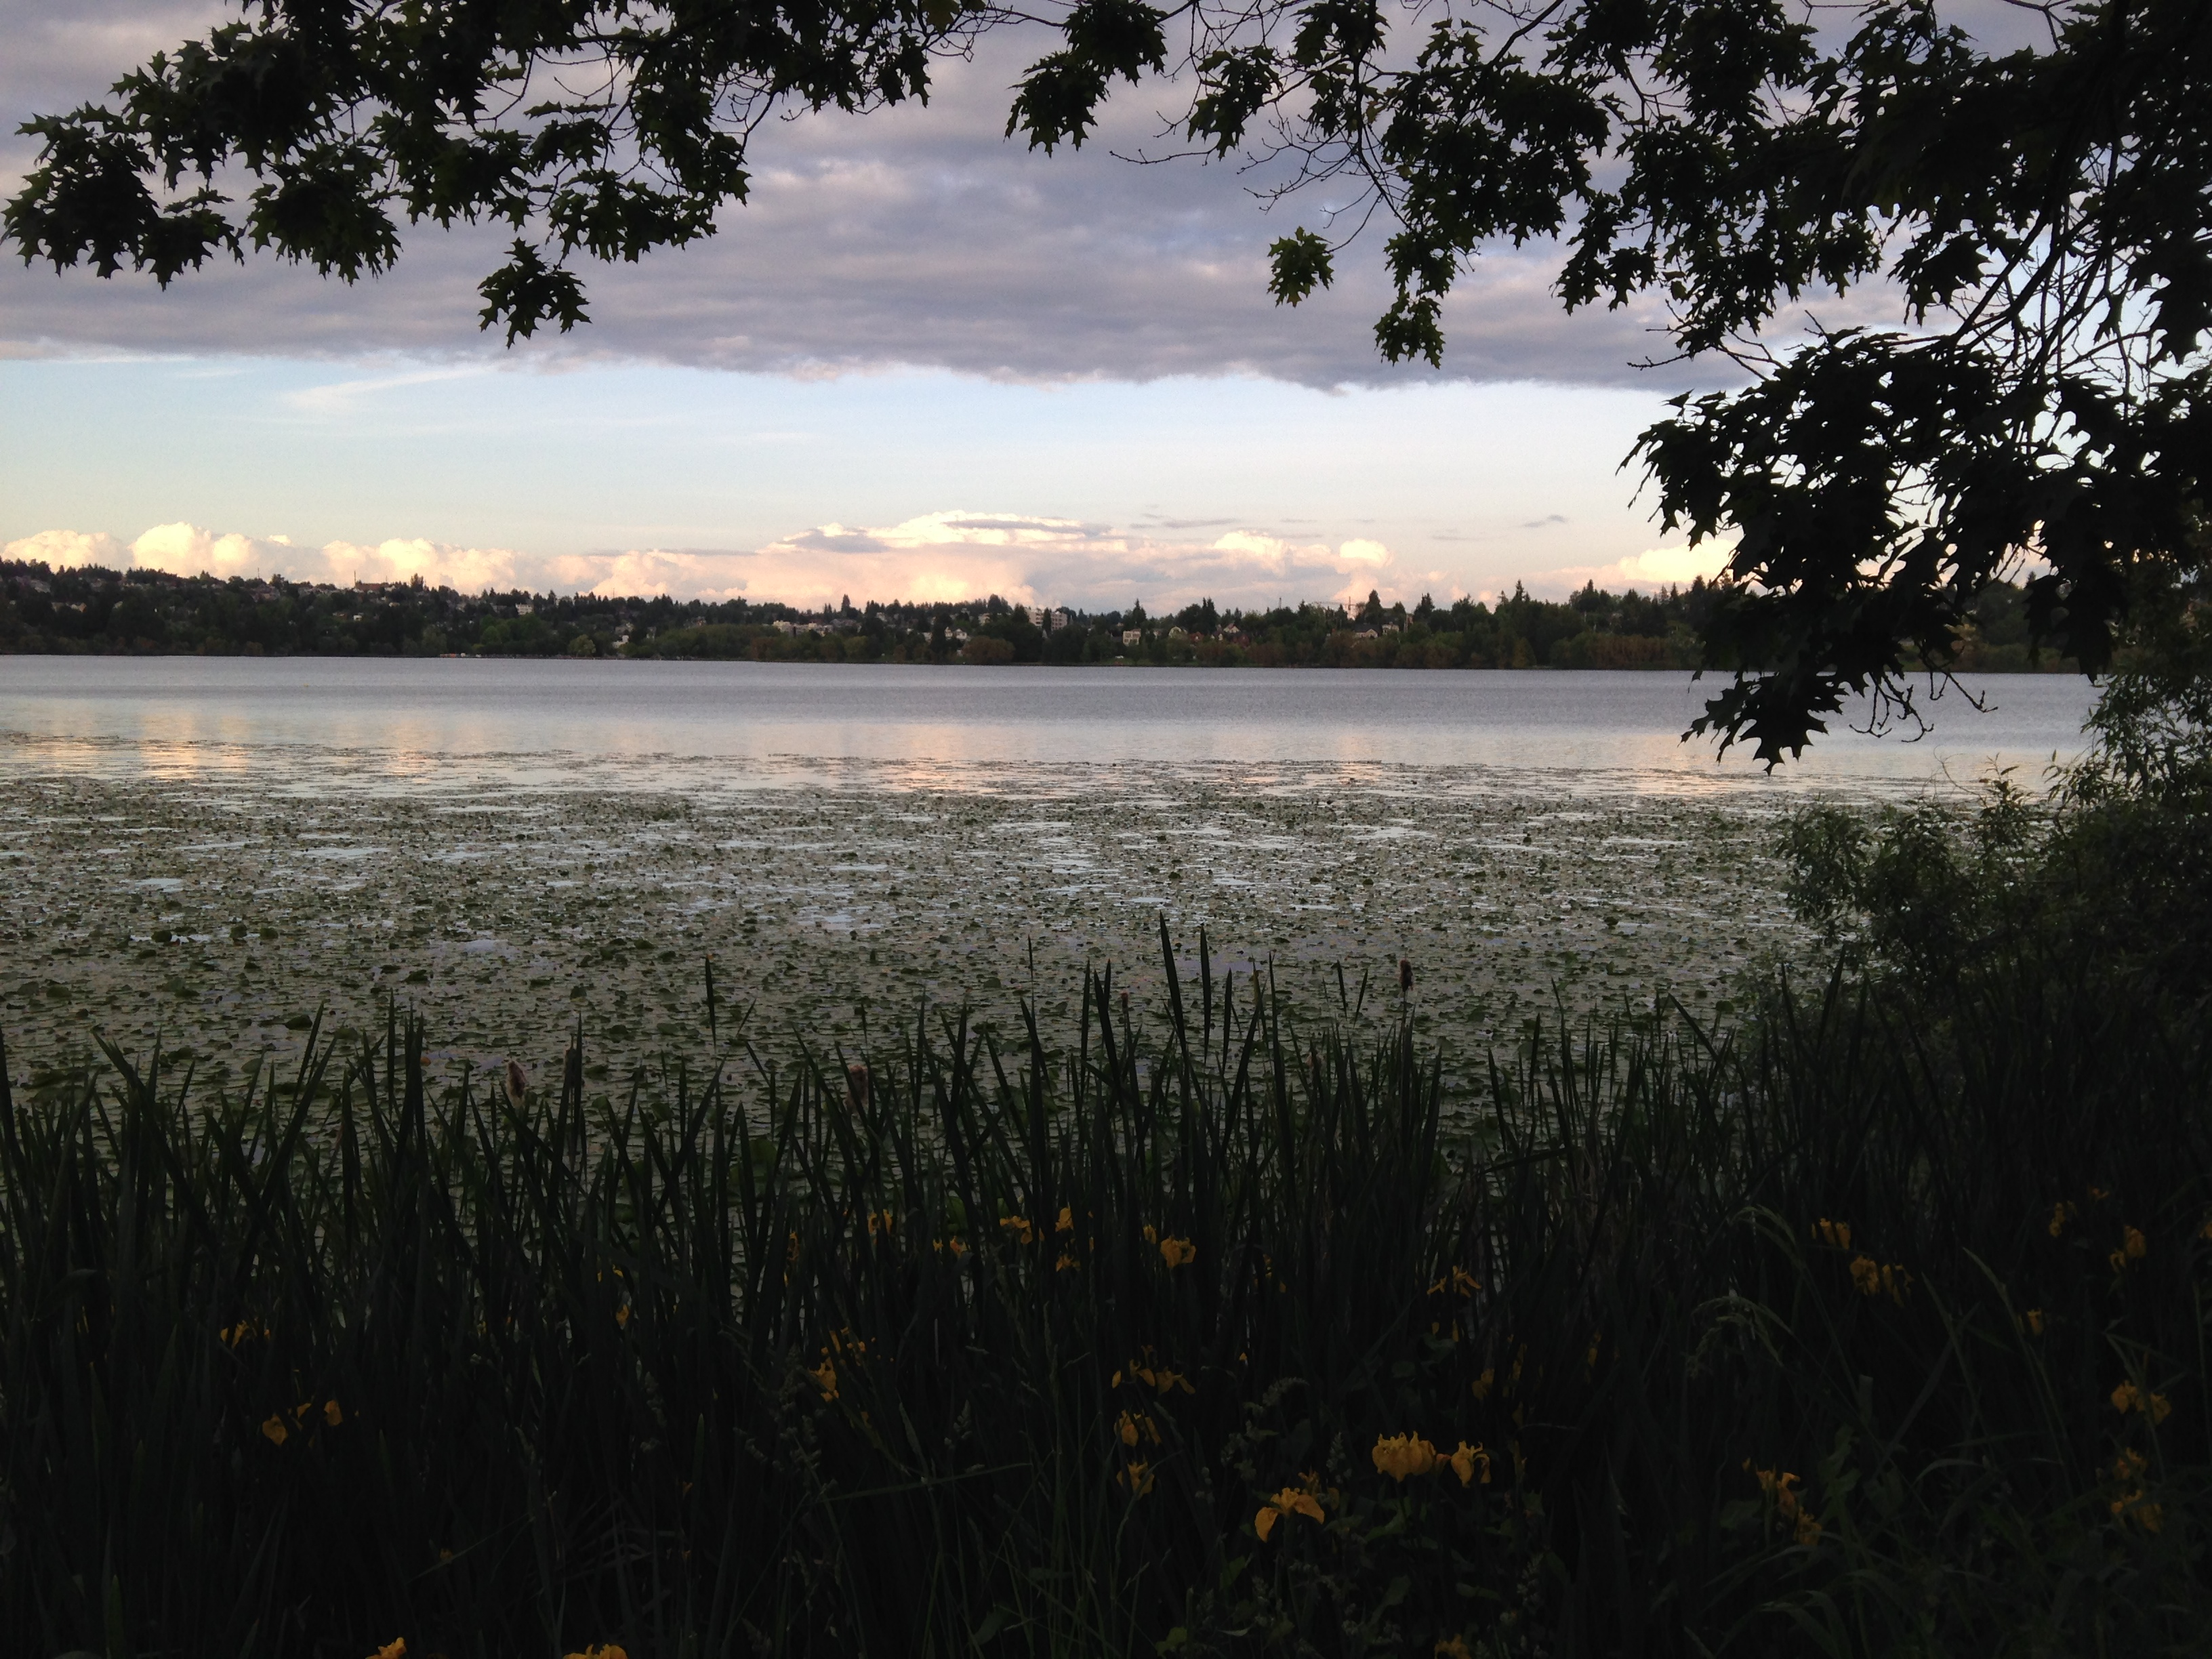 Walks around Green Lake, Washington